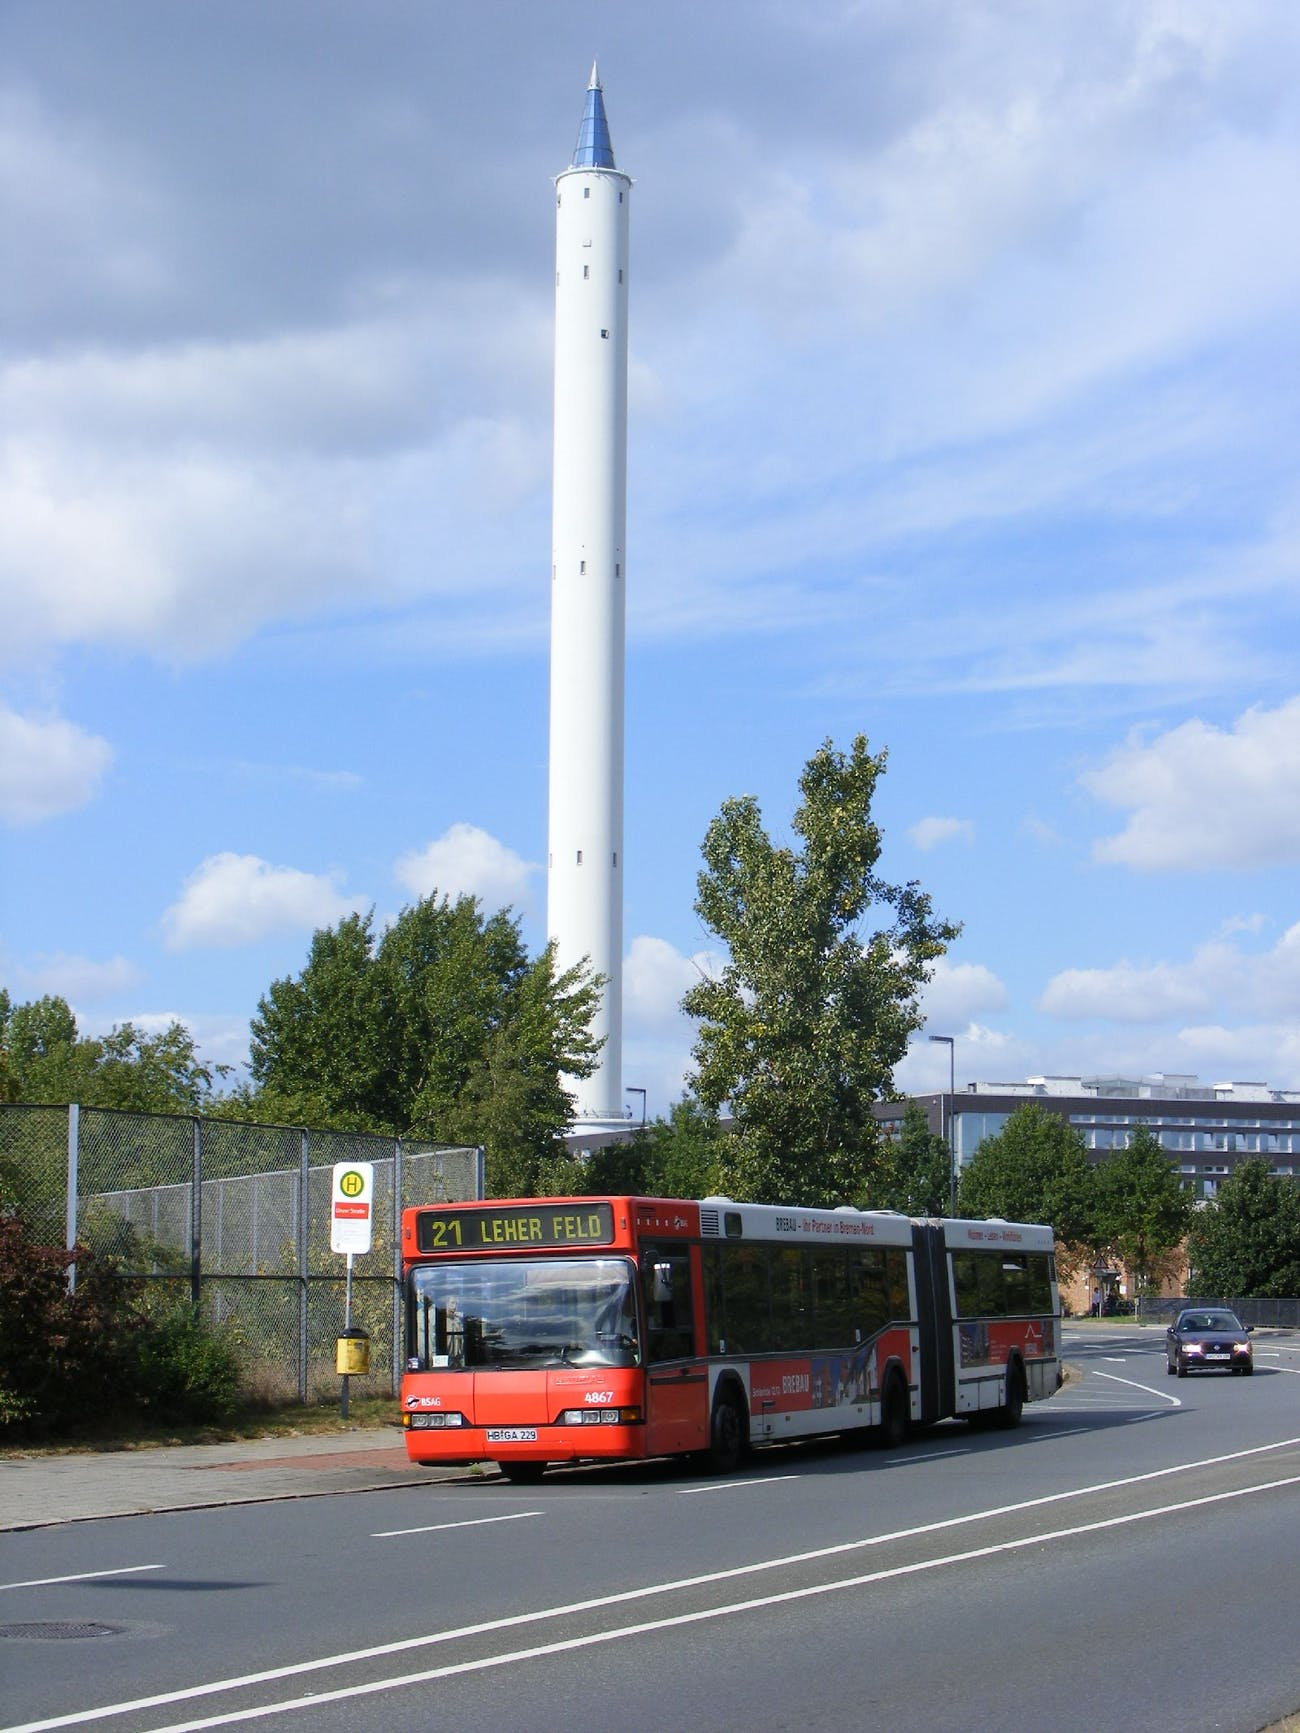 Neoplan articulated bus nr 4867 at Zarm, Bremen University